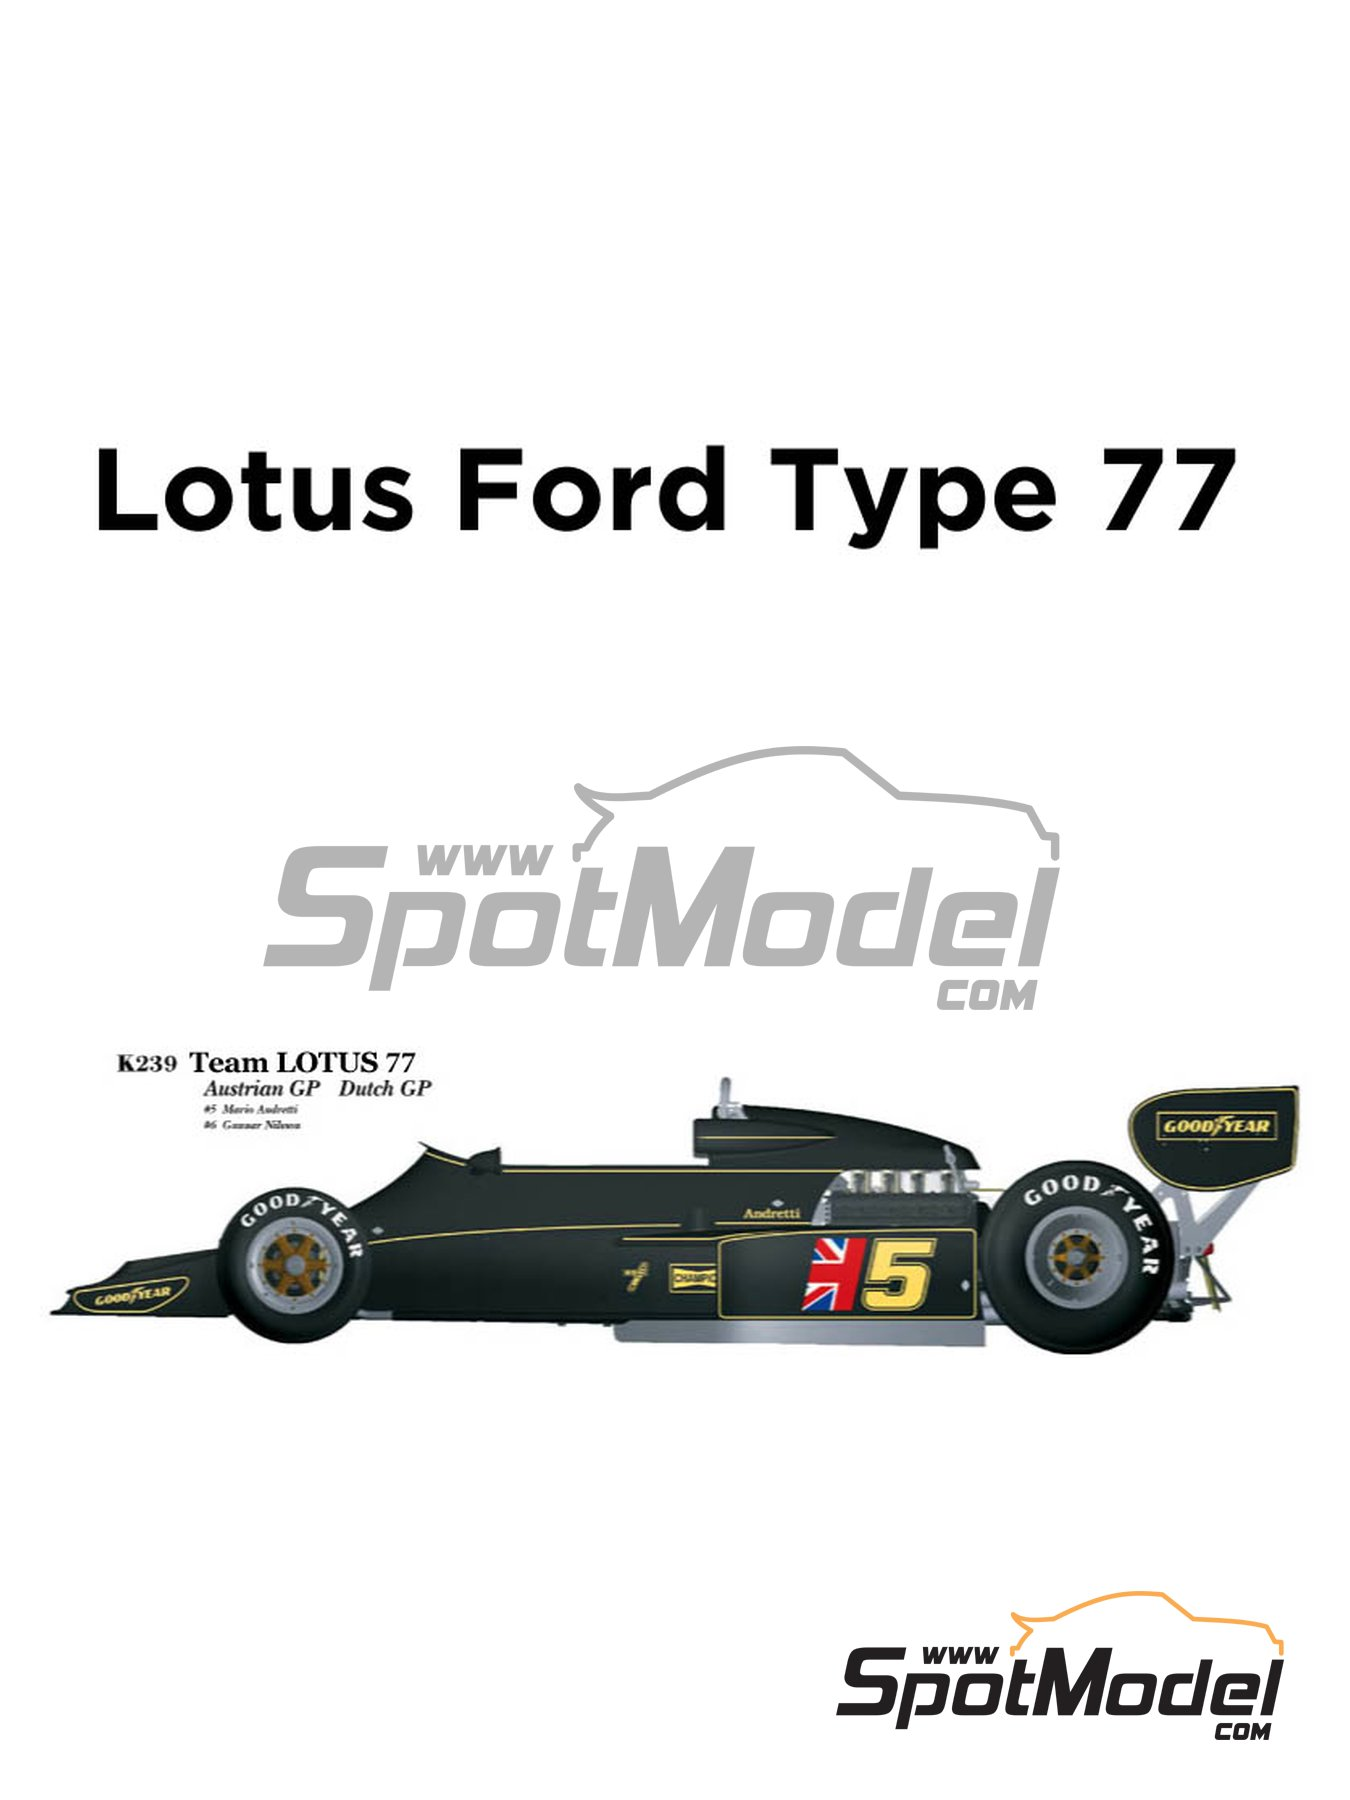 Lotus Ford Type 77 John Player Special - Austrian Grand Prix, Dutch Grand Prix 1976 | Model car kit in 1/20 scale manufactured by Model Factory Hiro (ref. MFH-K239) image